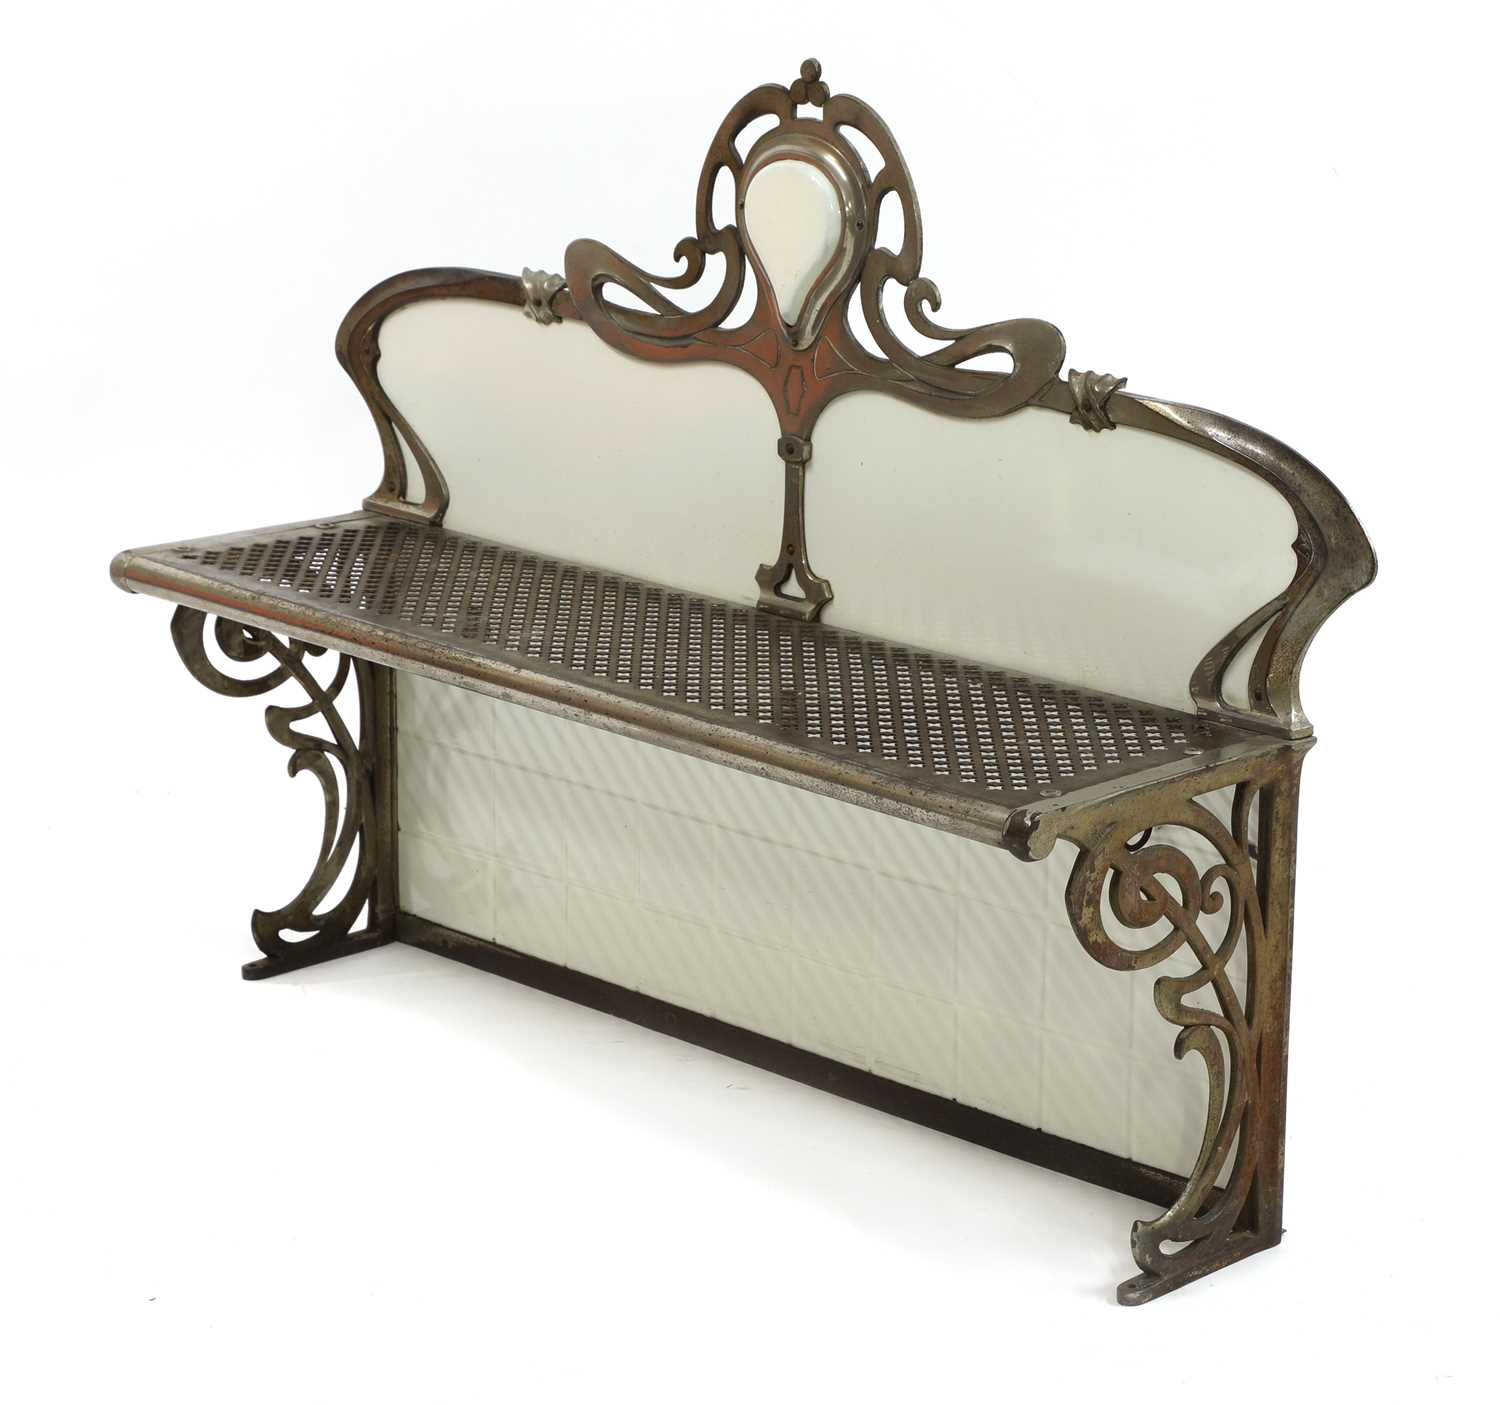 Lot 13-A French Art Nouveau metal and enamelled wall shelf